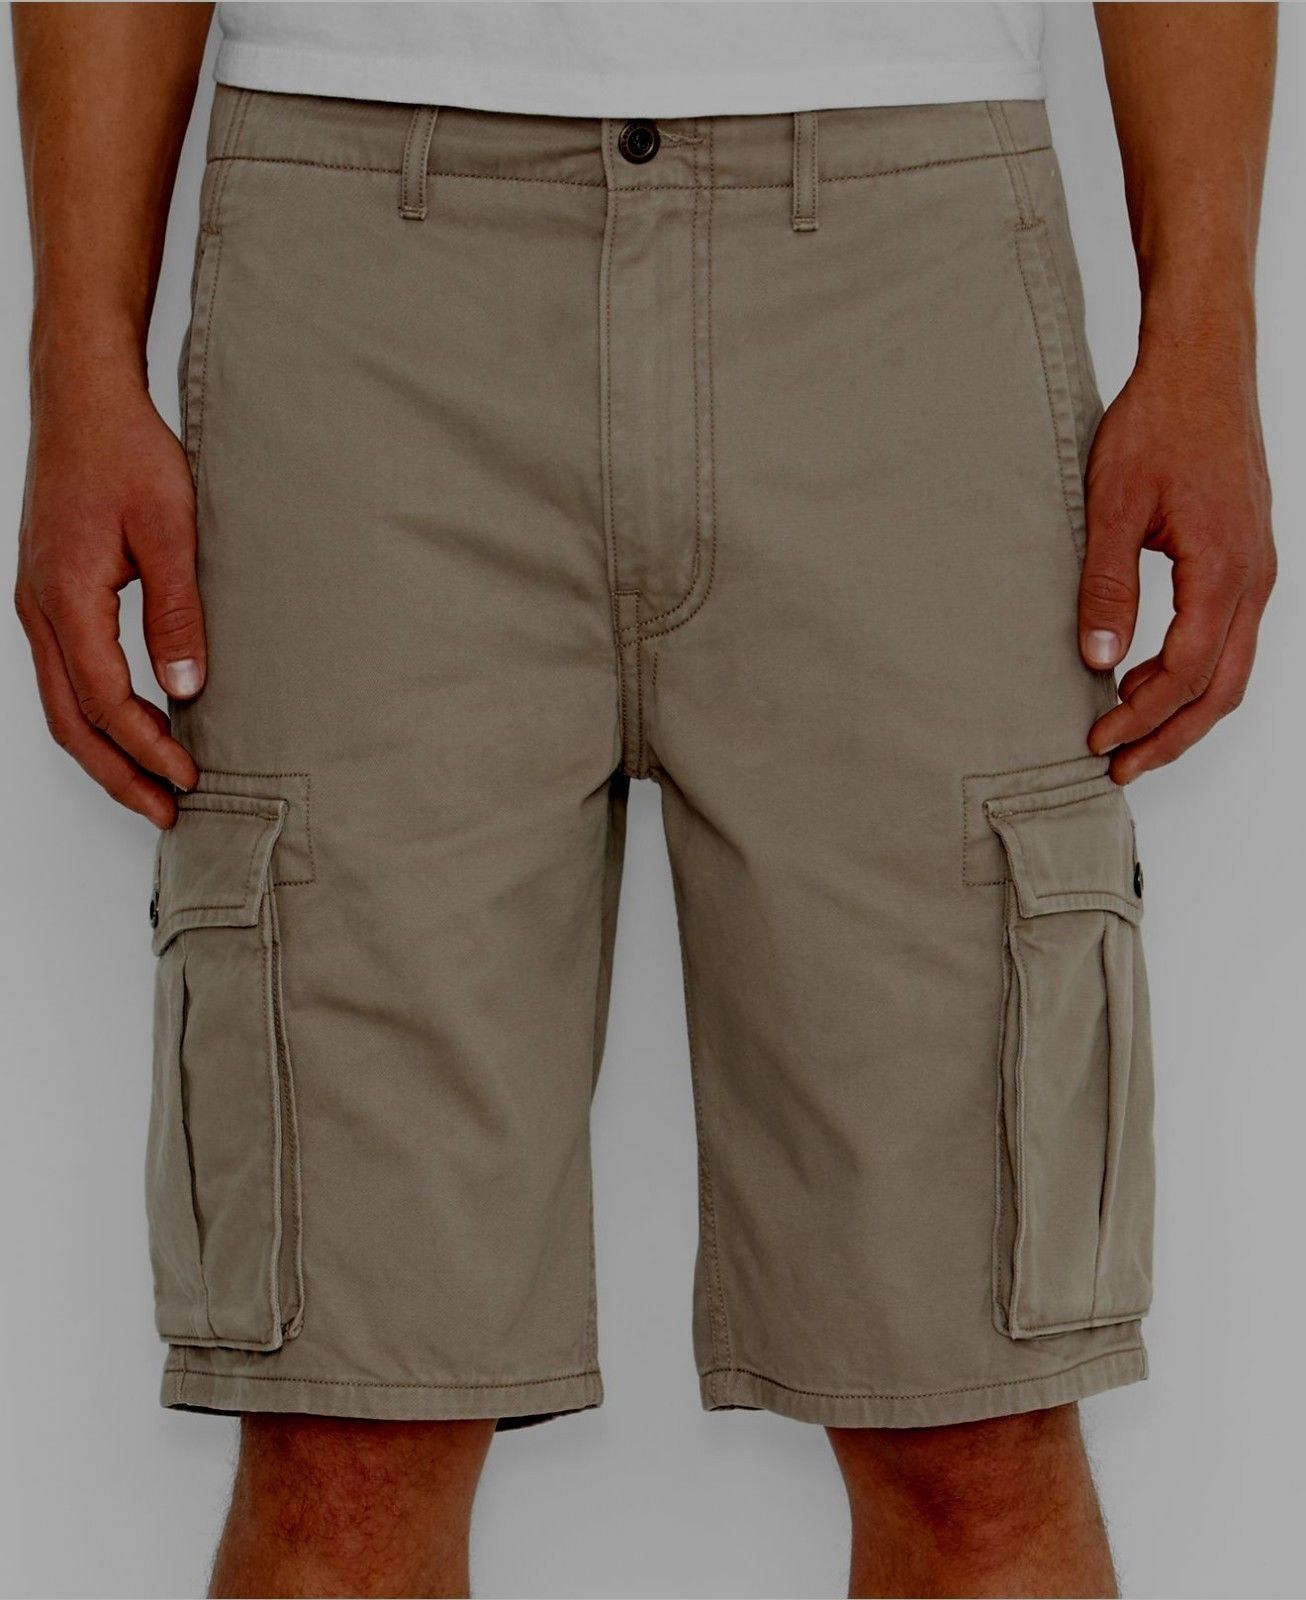 b1e377258f LEVI's Men's Ace Cargo I Shorts W: 30 Relaxed Fit Chino Beige Taffy